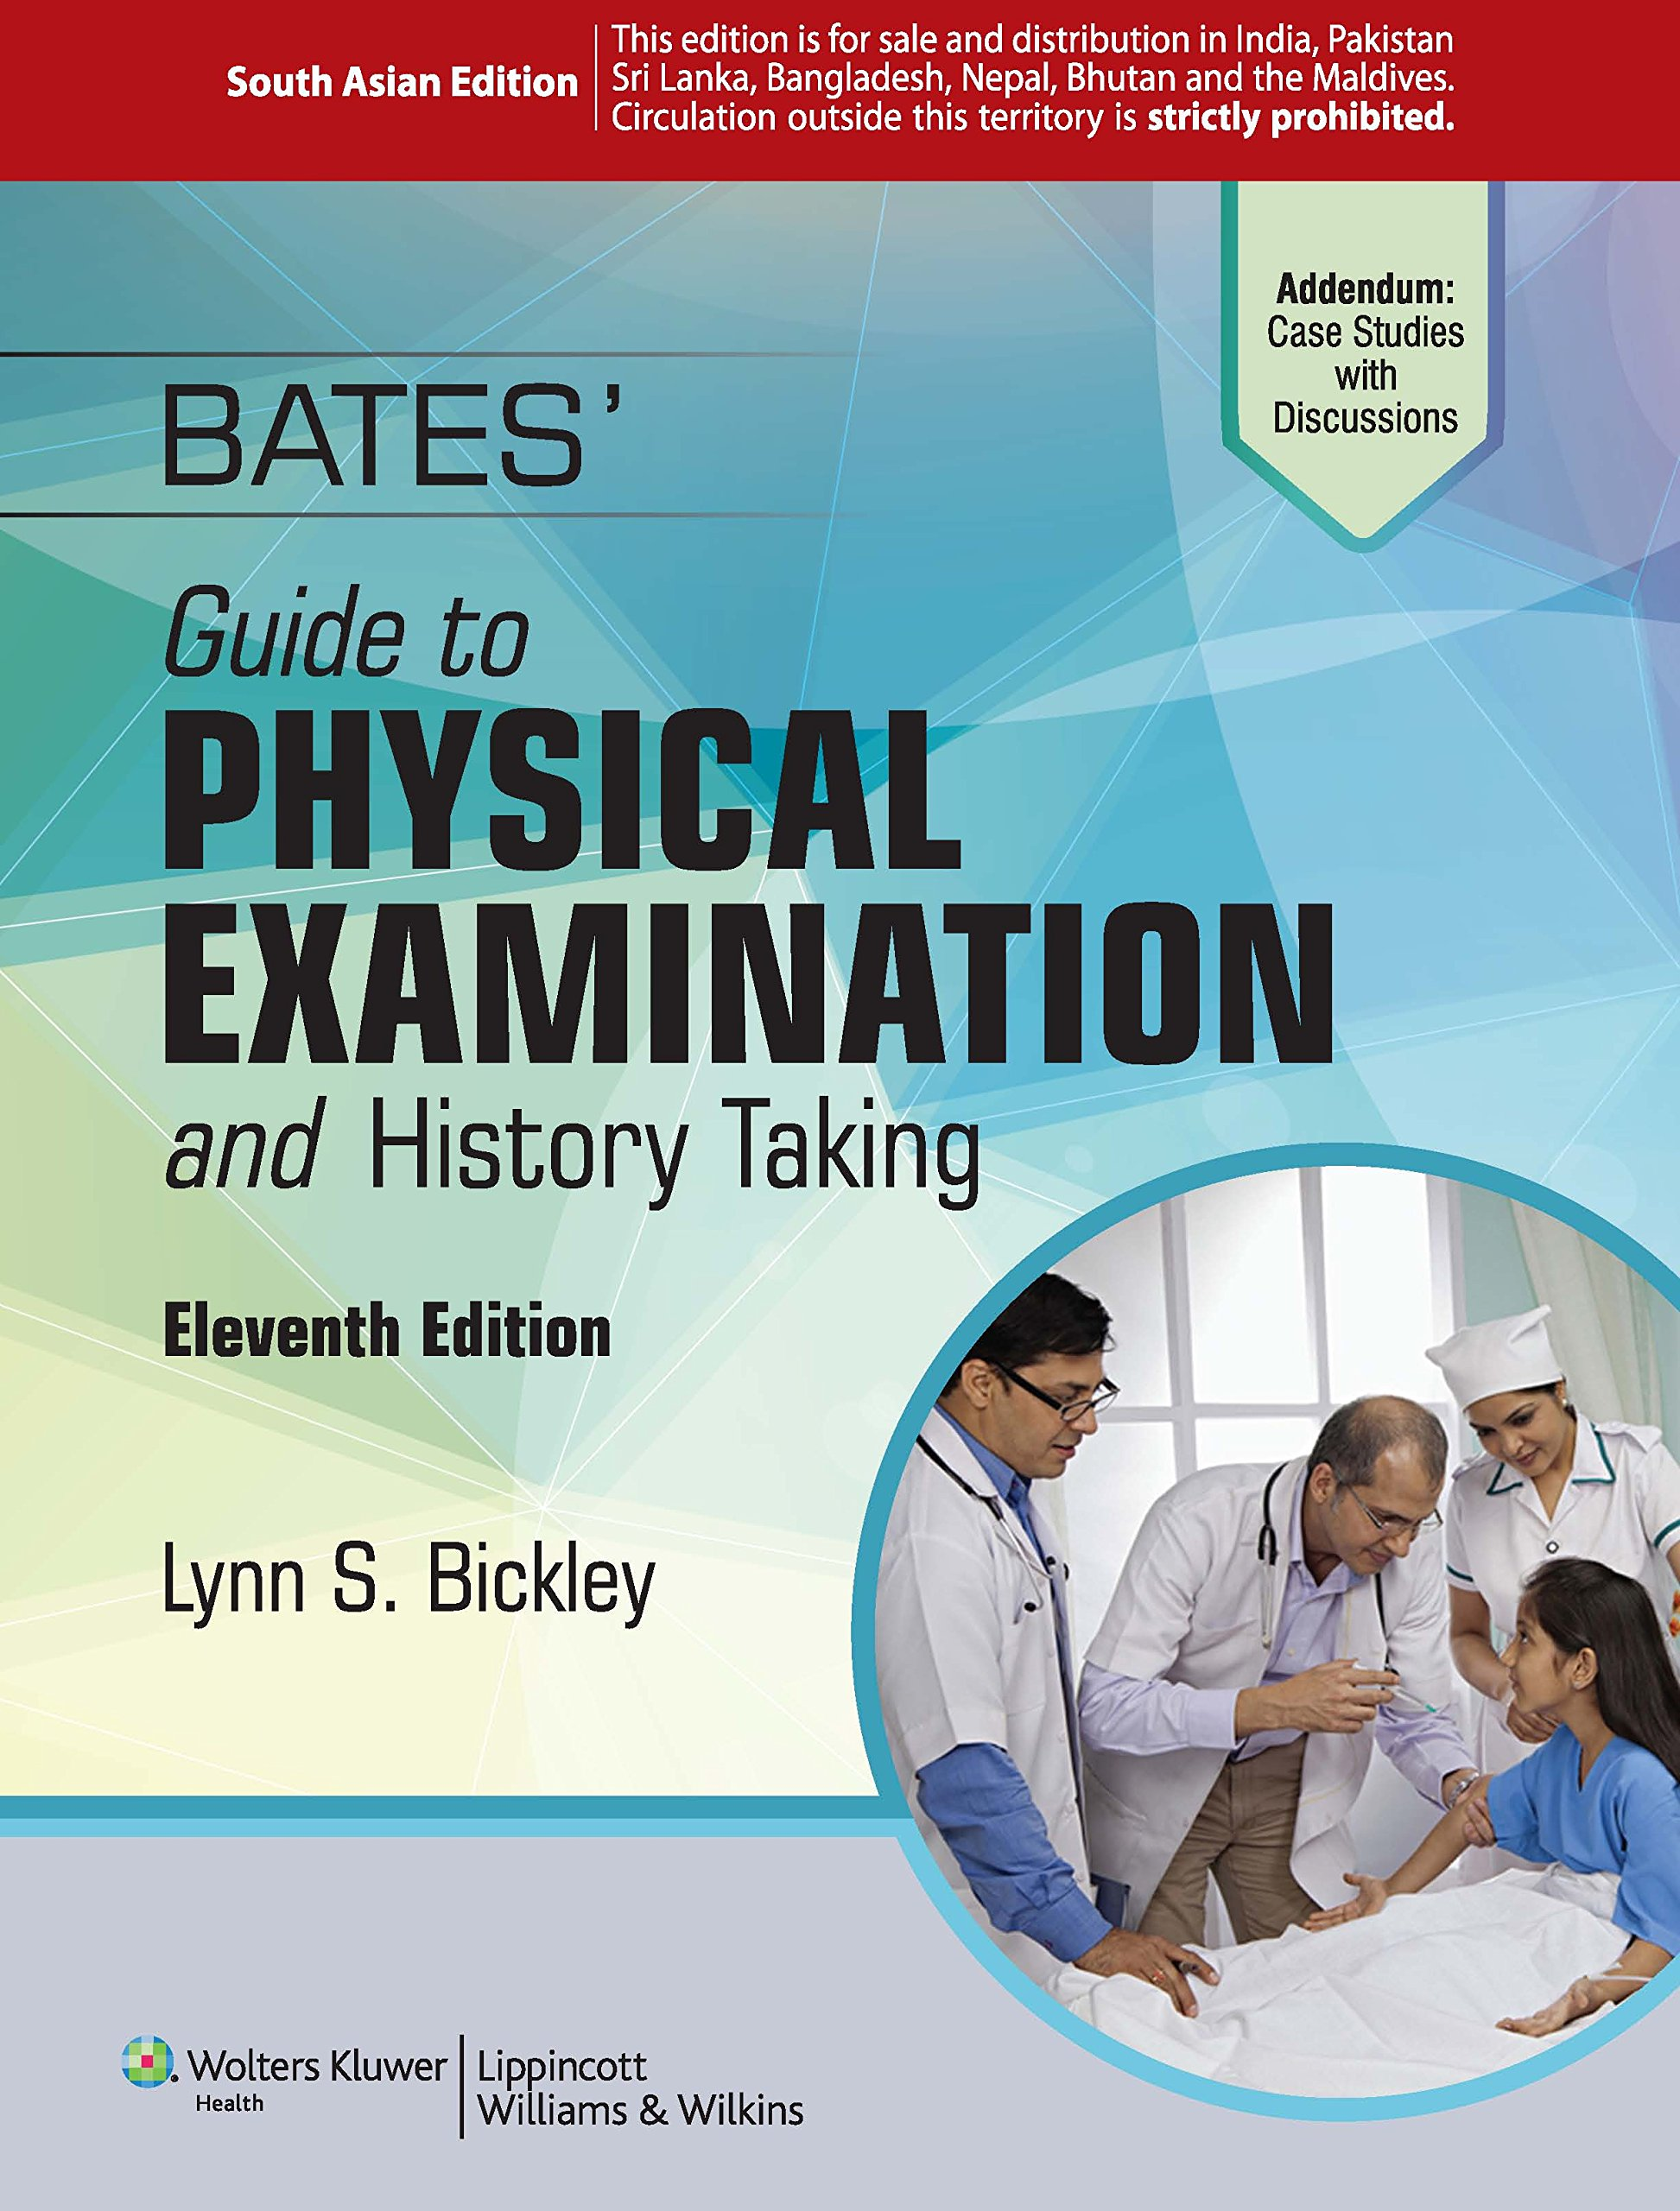 Bates Guide To Physical Examination And History Taking 11Ed (Pb 2015): Lynn  Bickley Md: 9788184738292: Amazon.com: Books